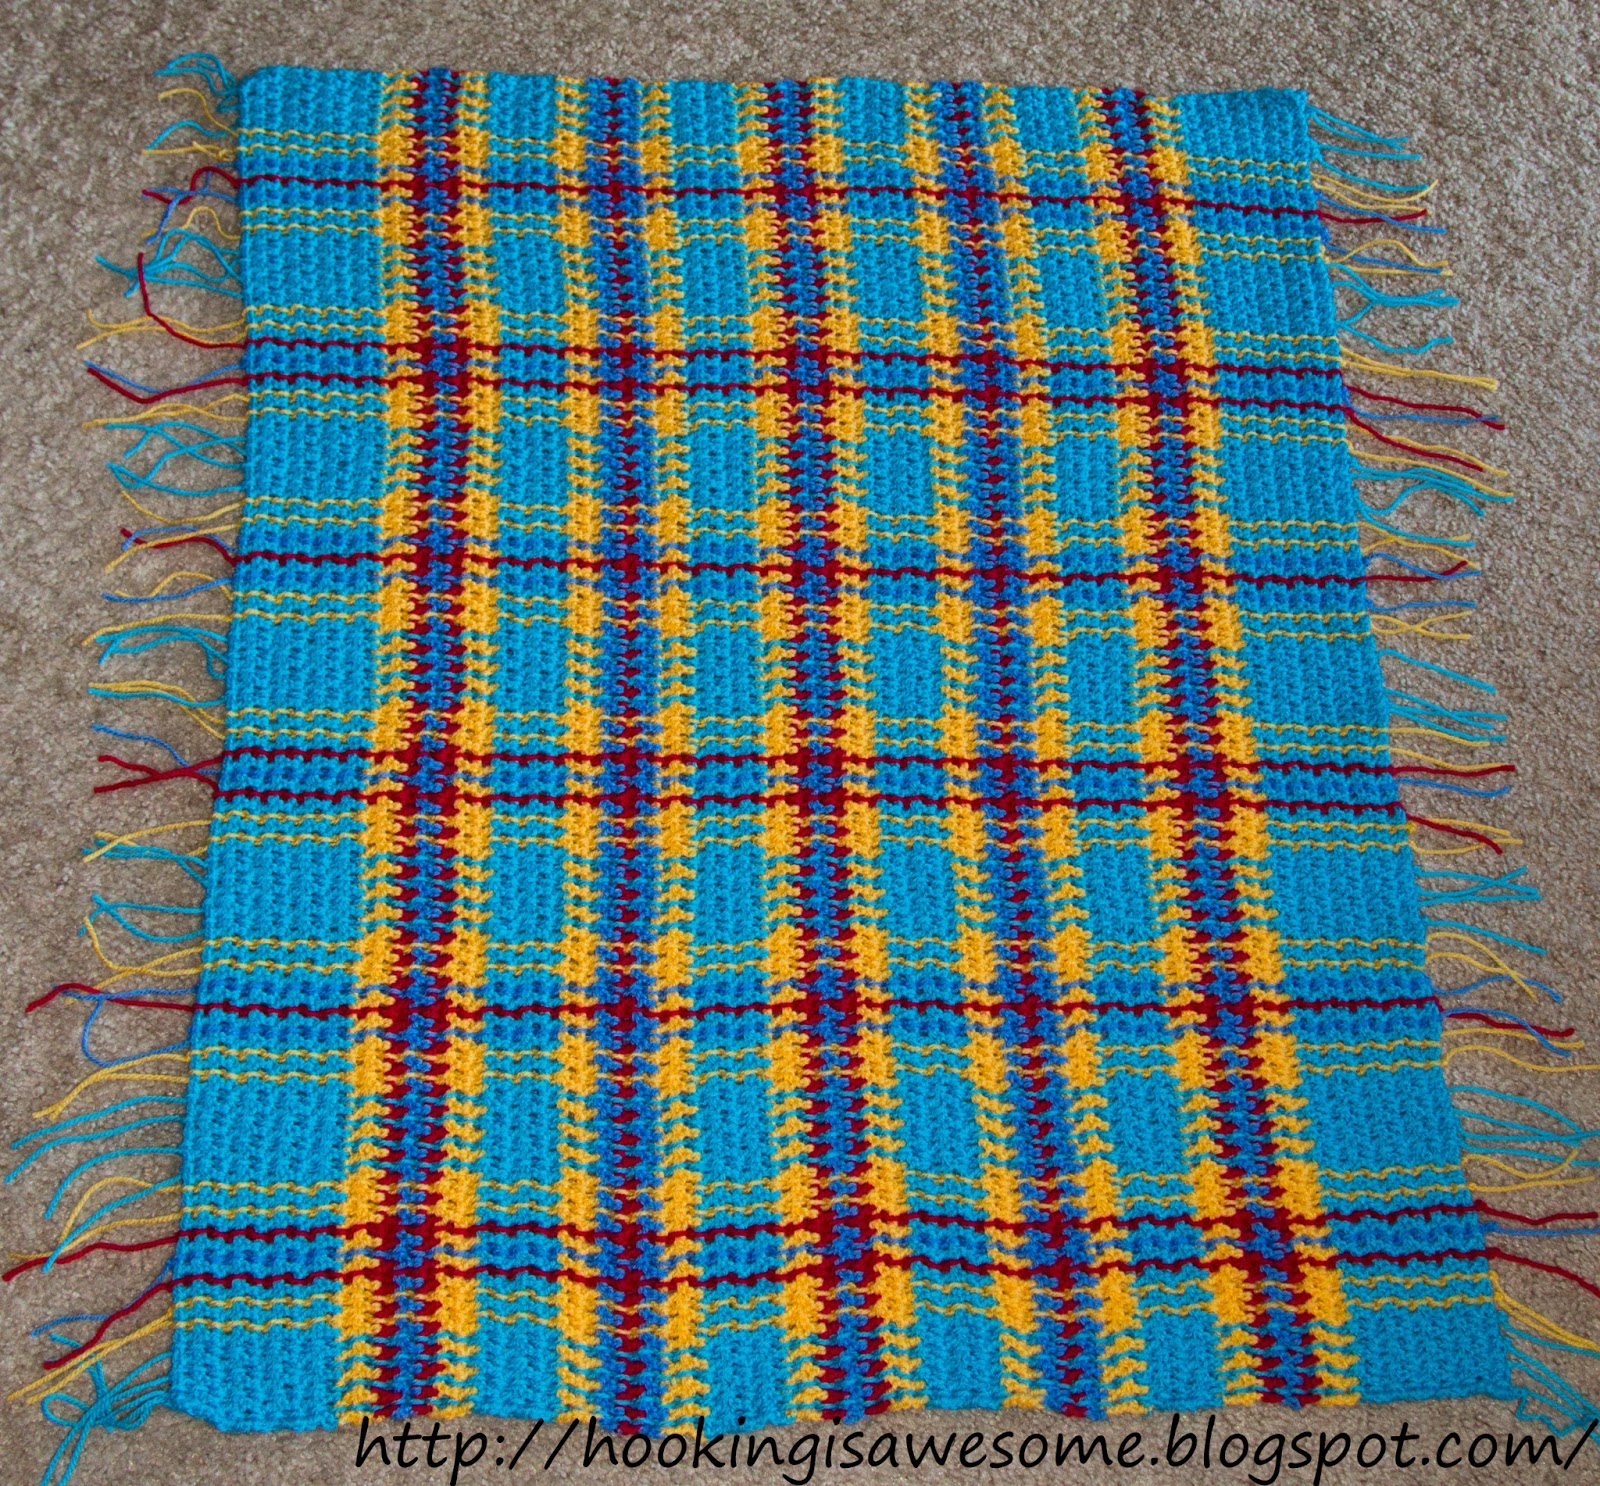 Hooking is Awesome: My Hooked & Woven Baby Blanket Pattern